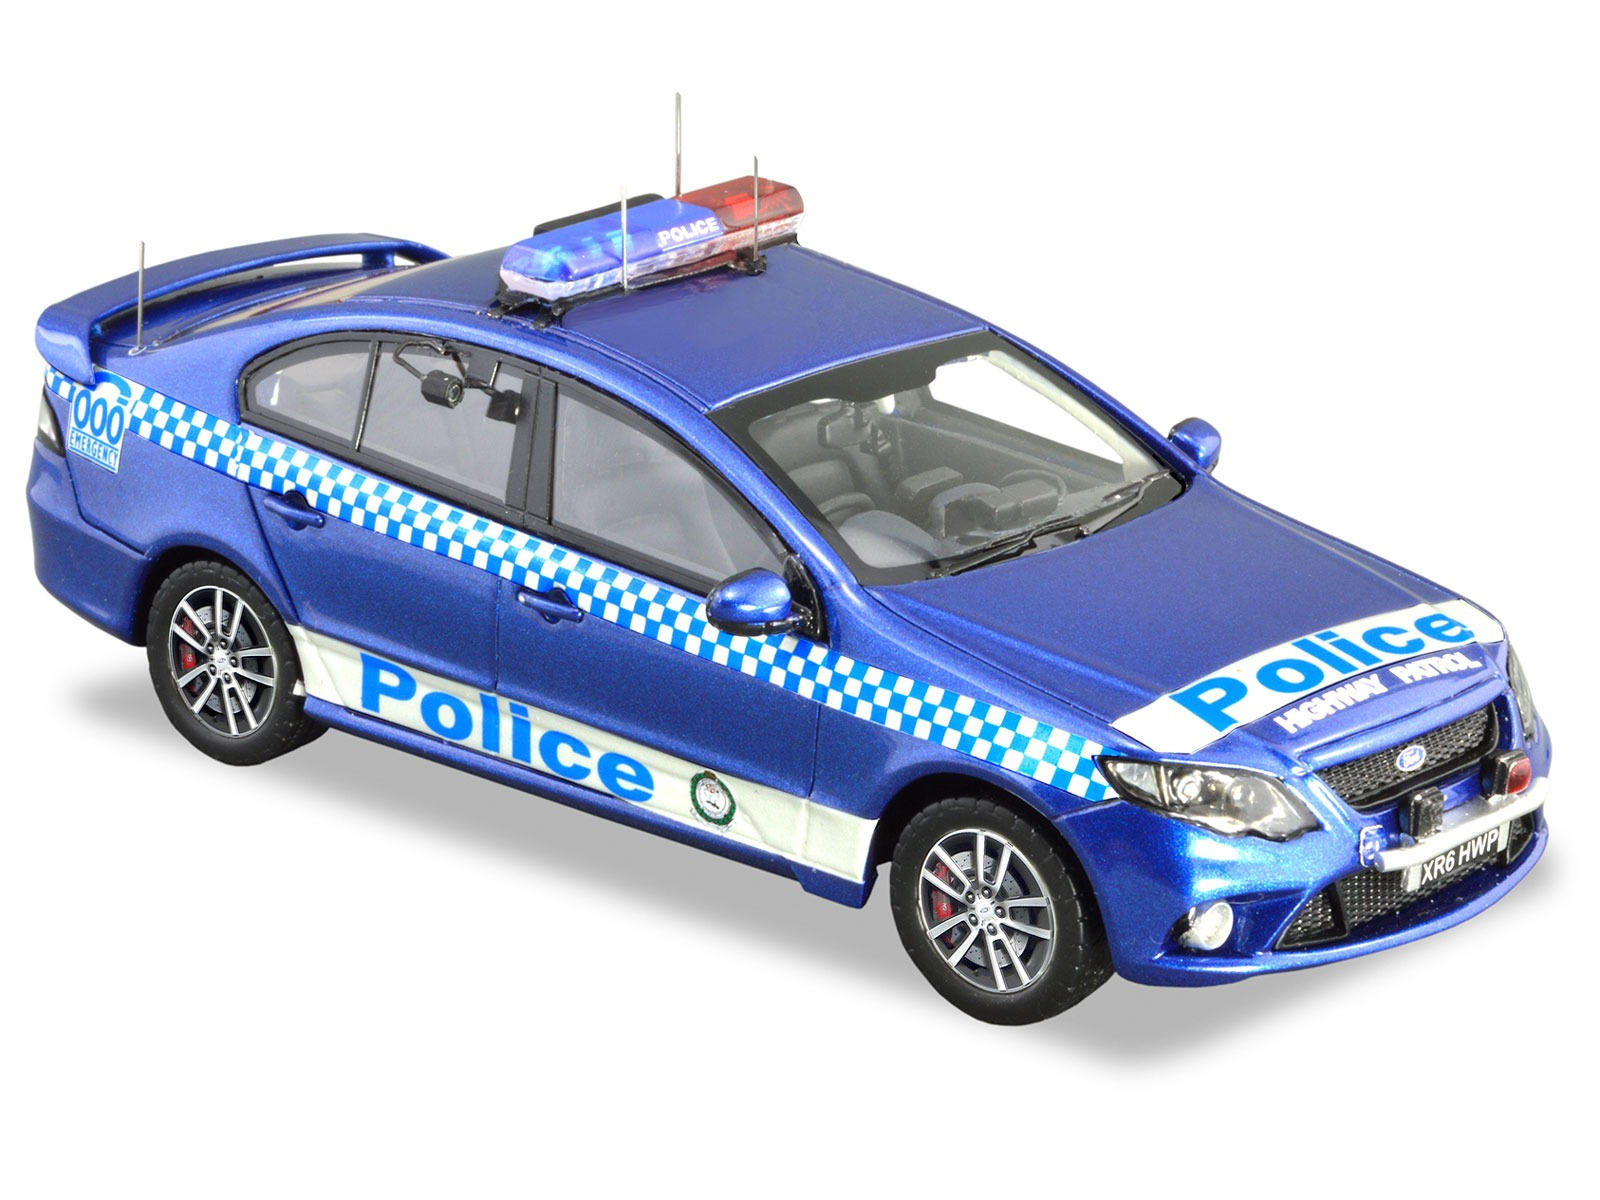 Ford FG XR6 Turbo NSW Highway Patrol – Kinetic